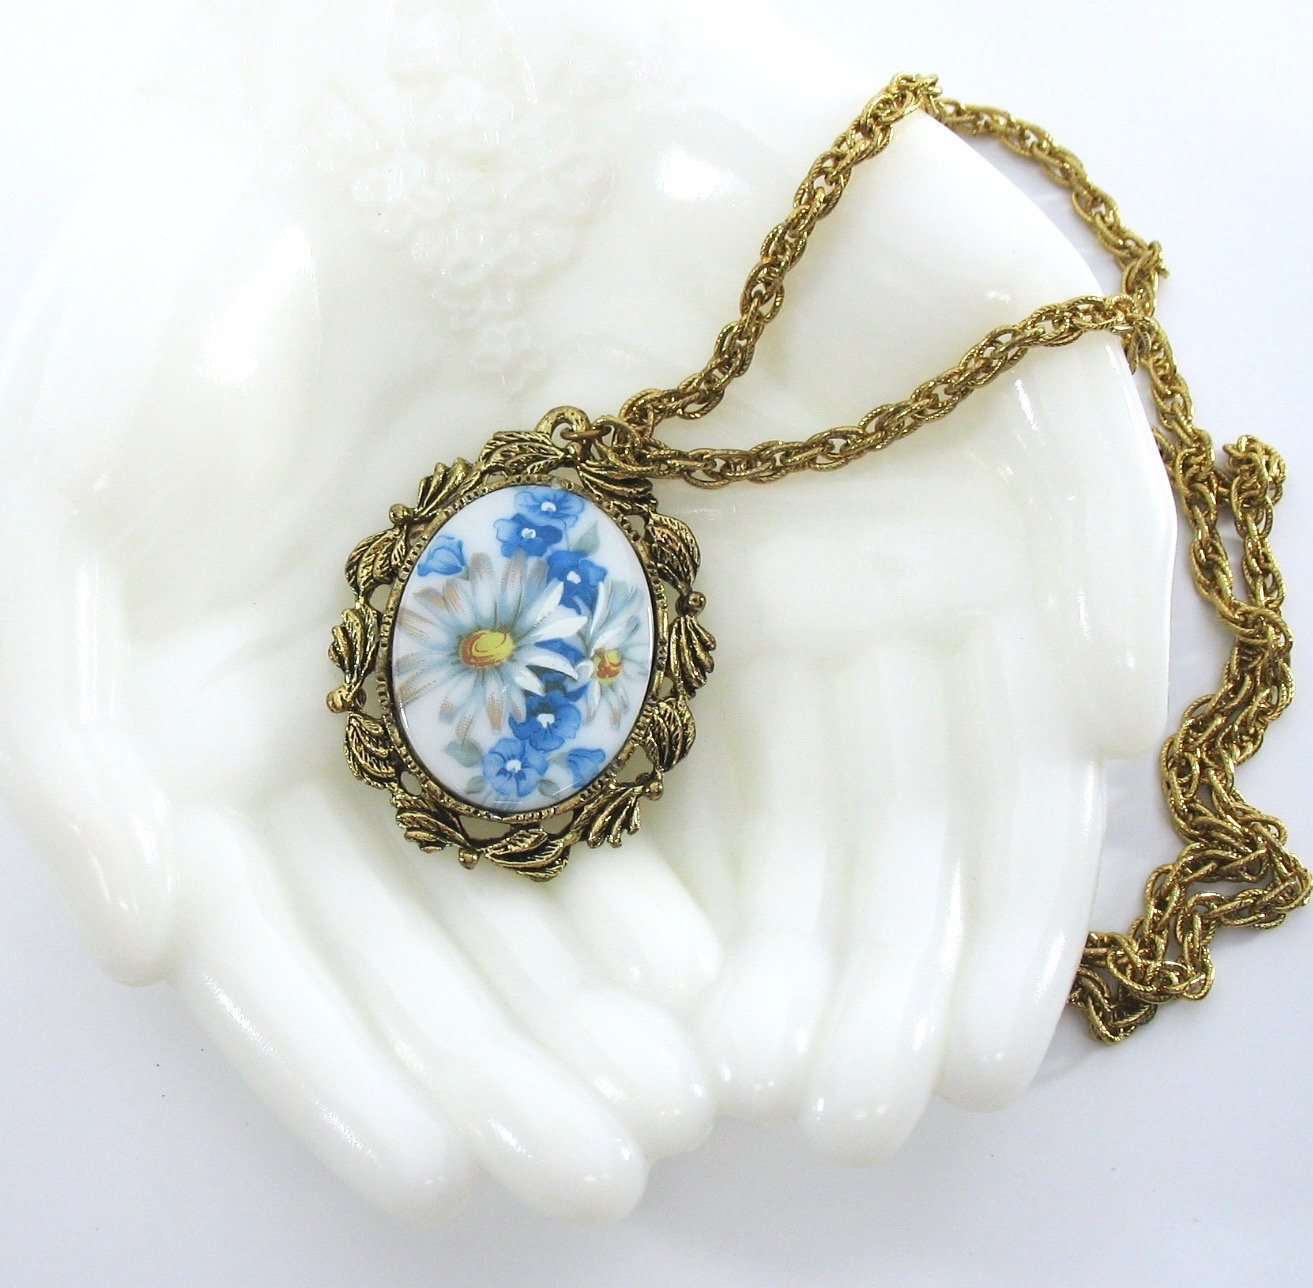 Floral Pendant Necklace, Reversible Mirror on Back, Painted Daisy, Blue Violets,